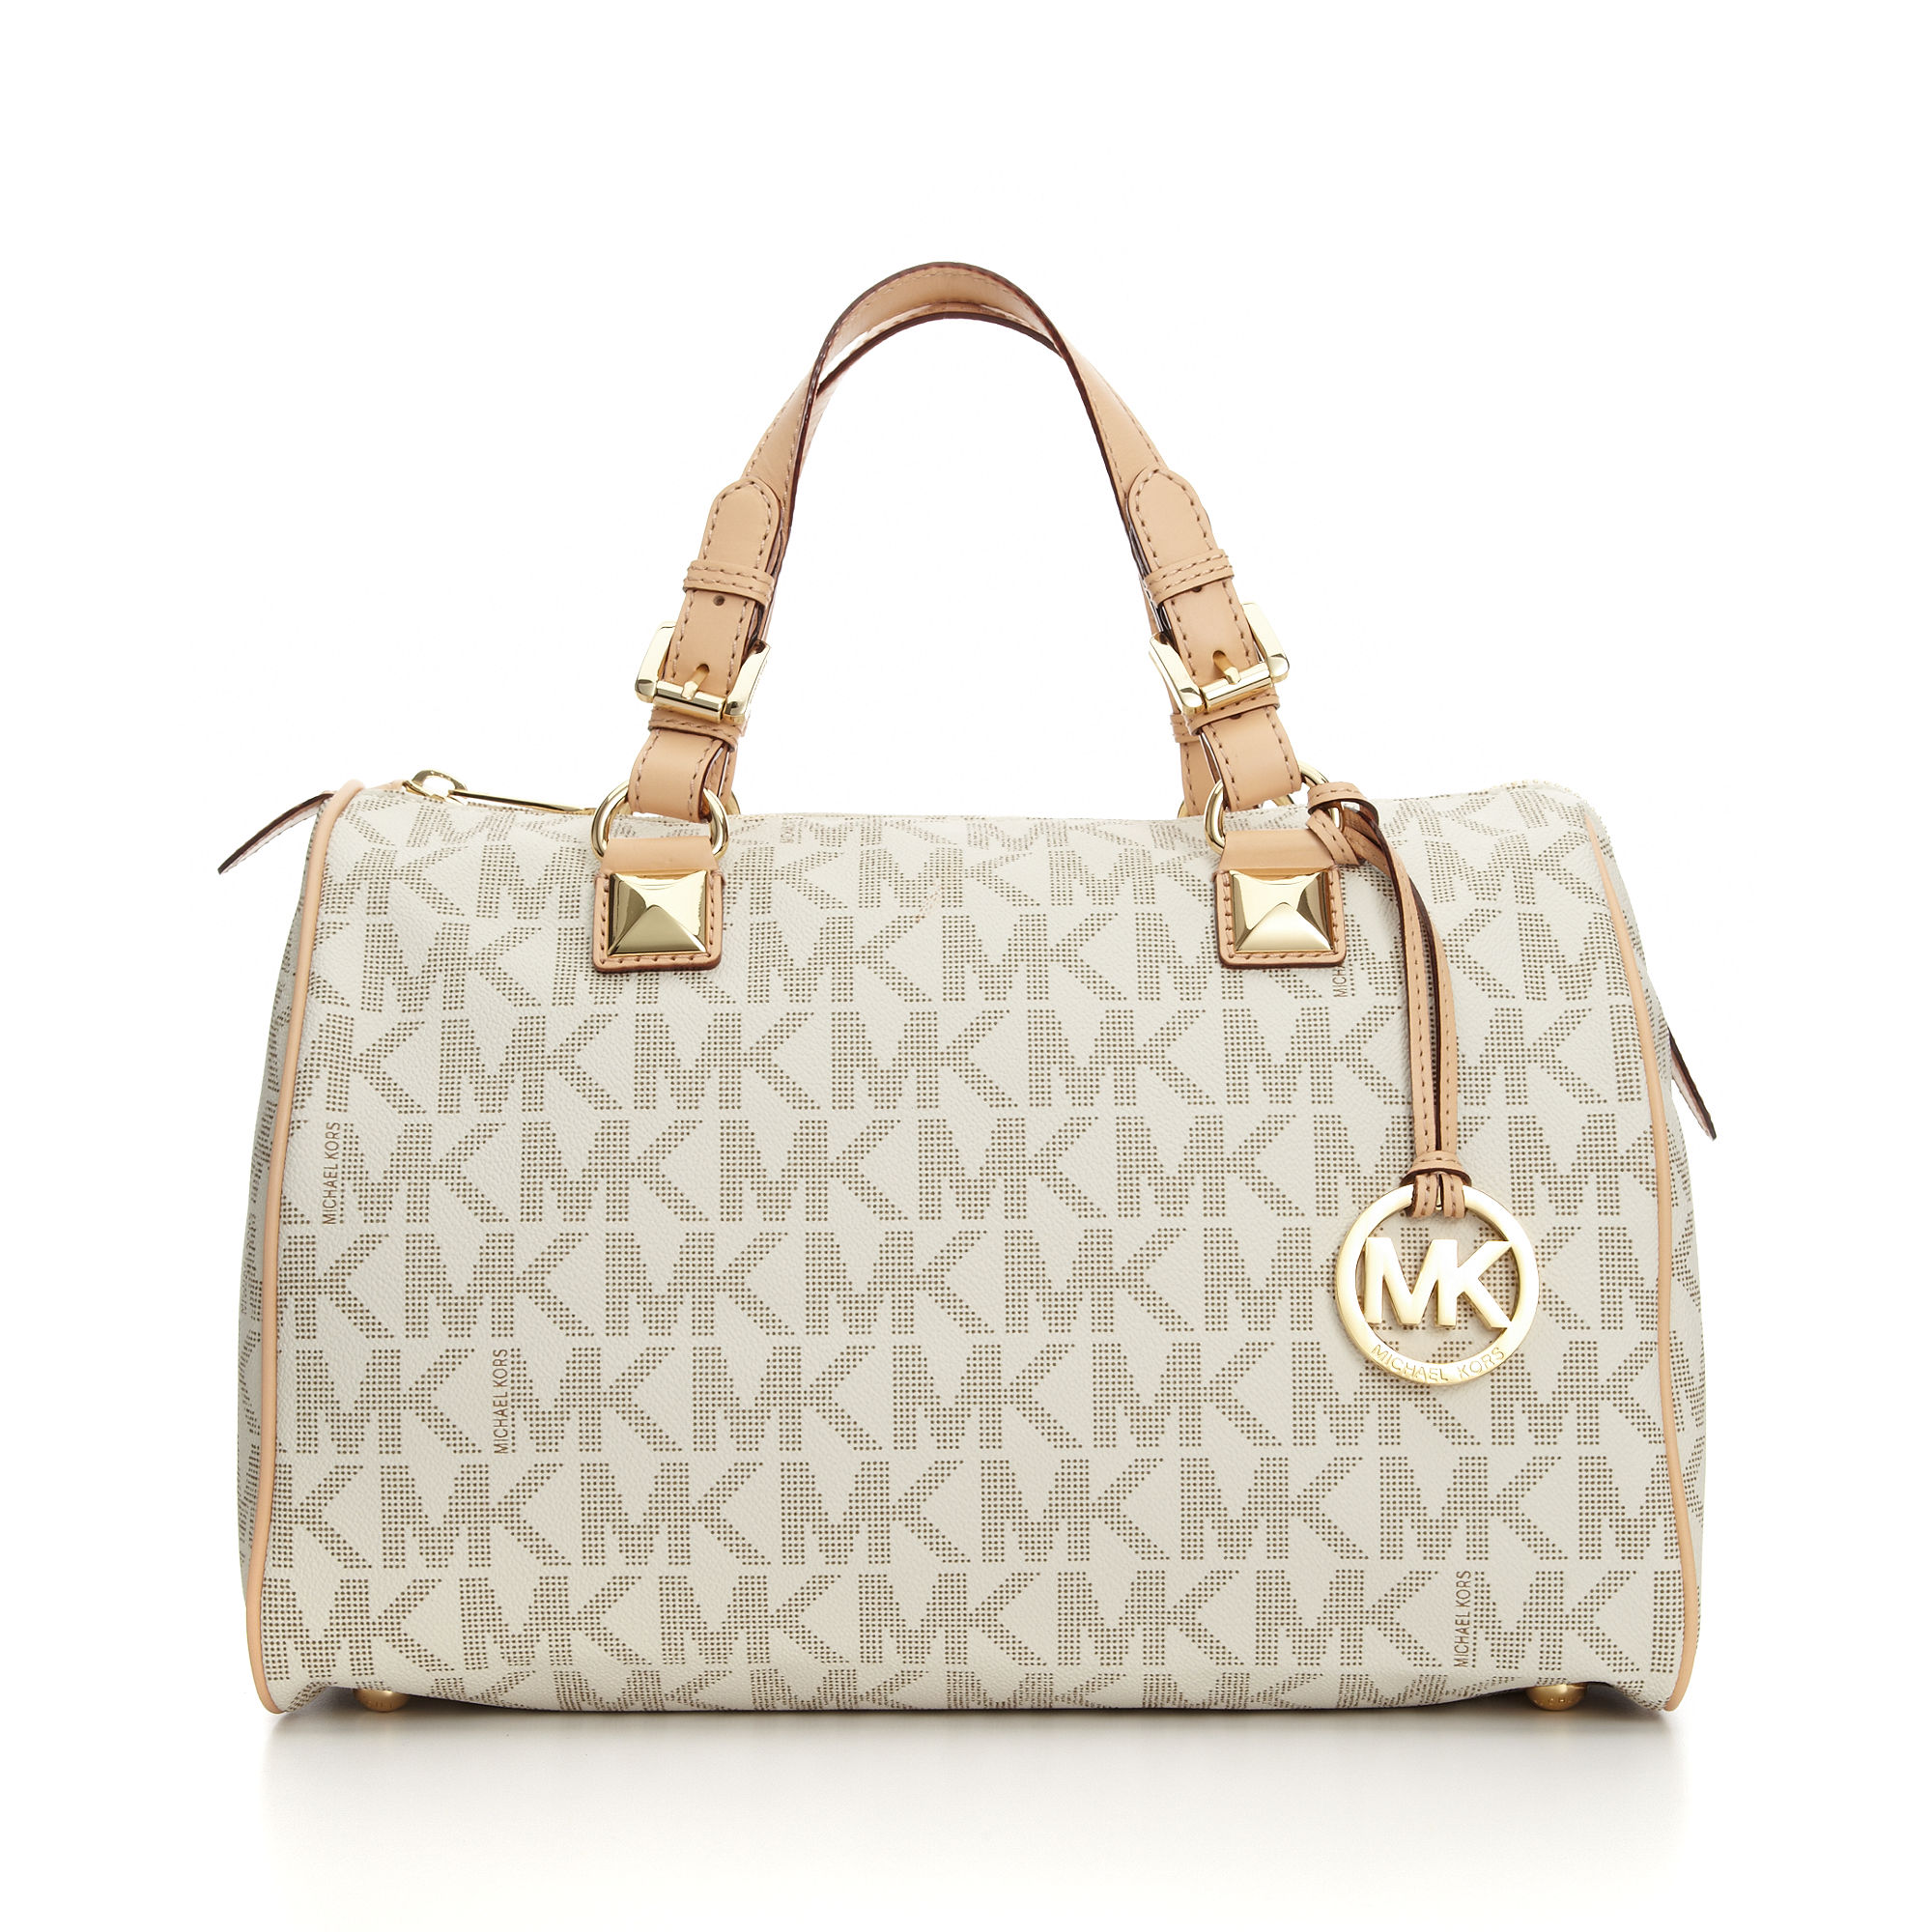 Michael kors Grayson Large Satchel in Natural | Lyst